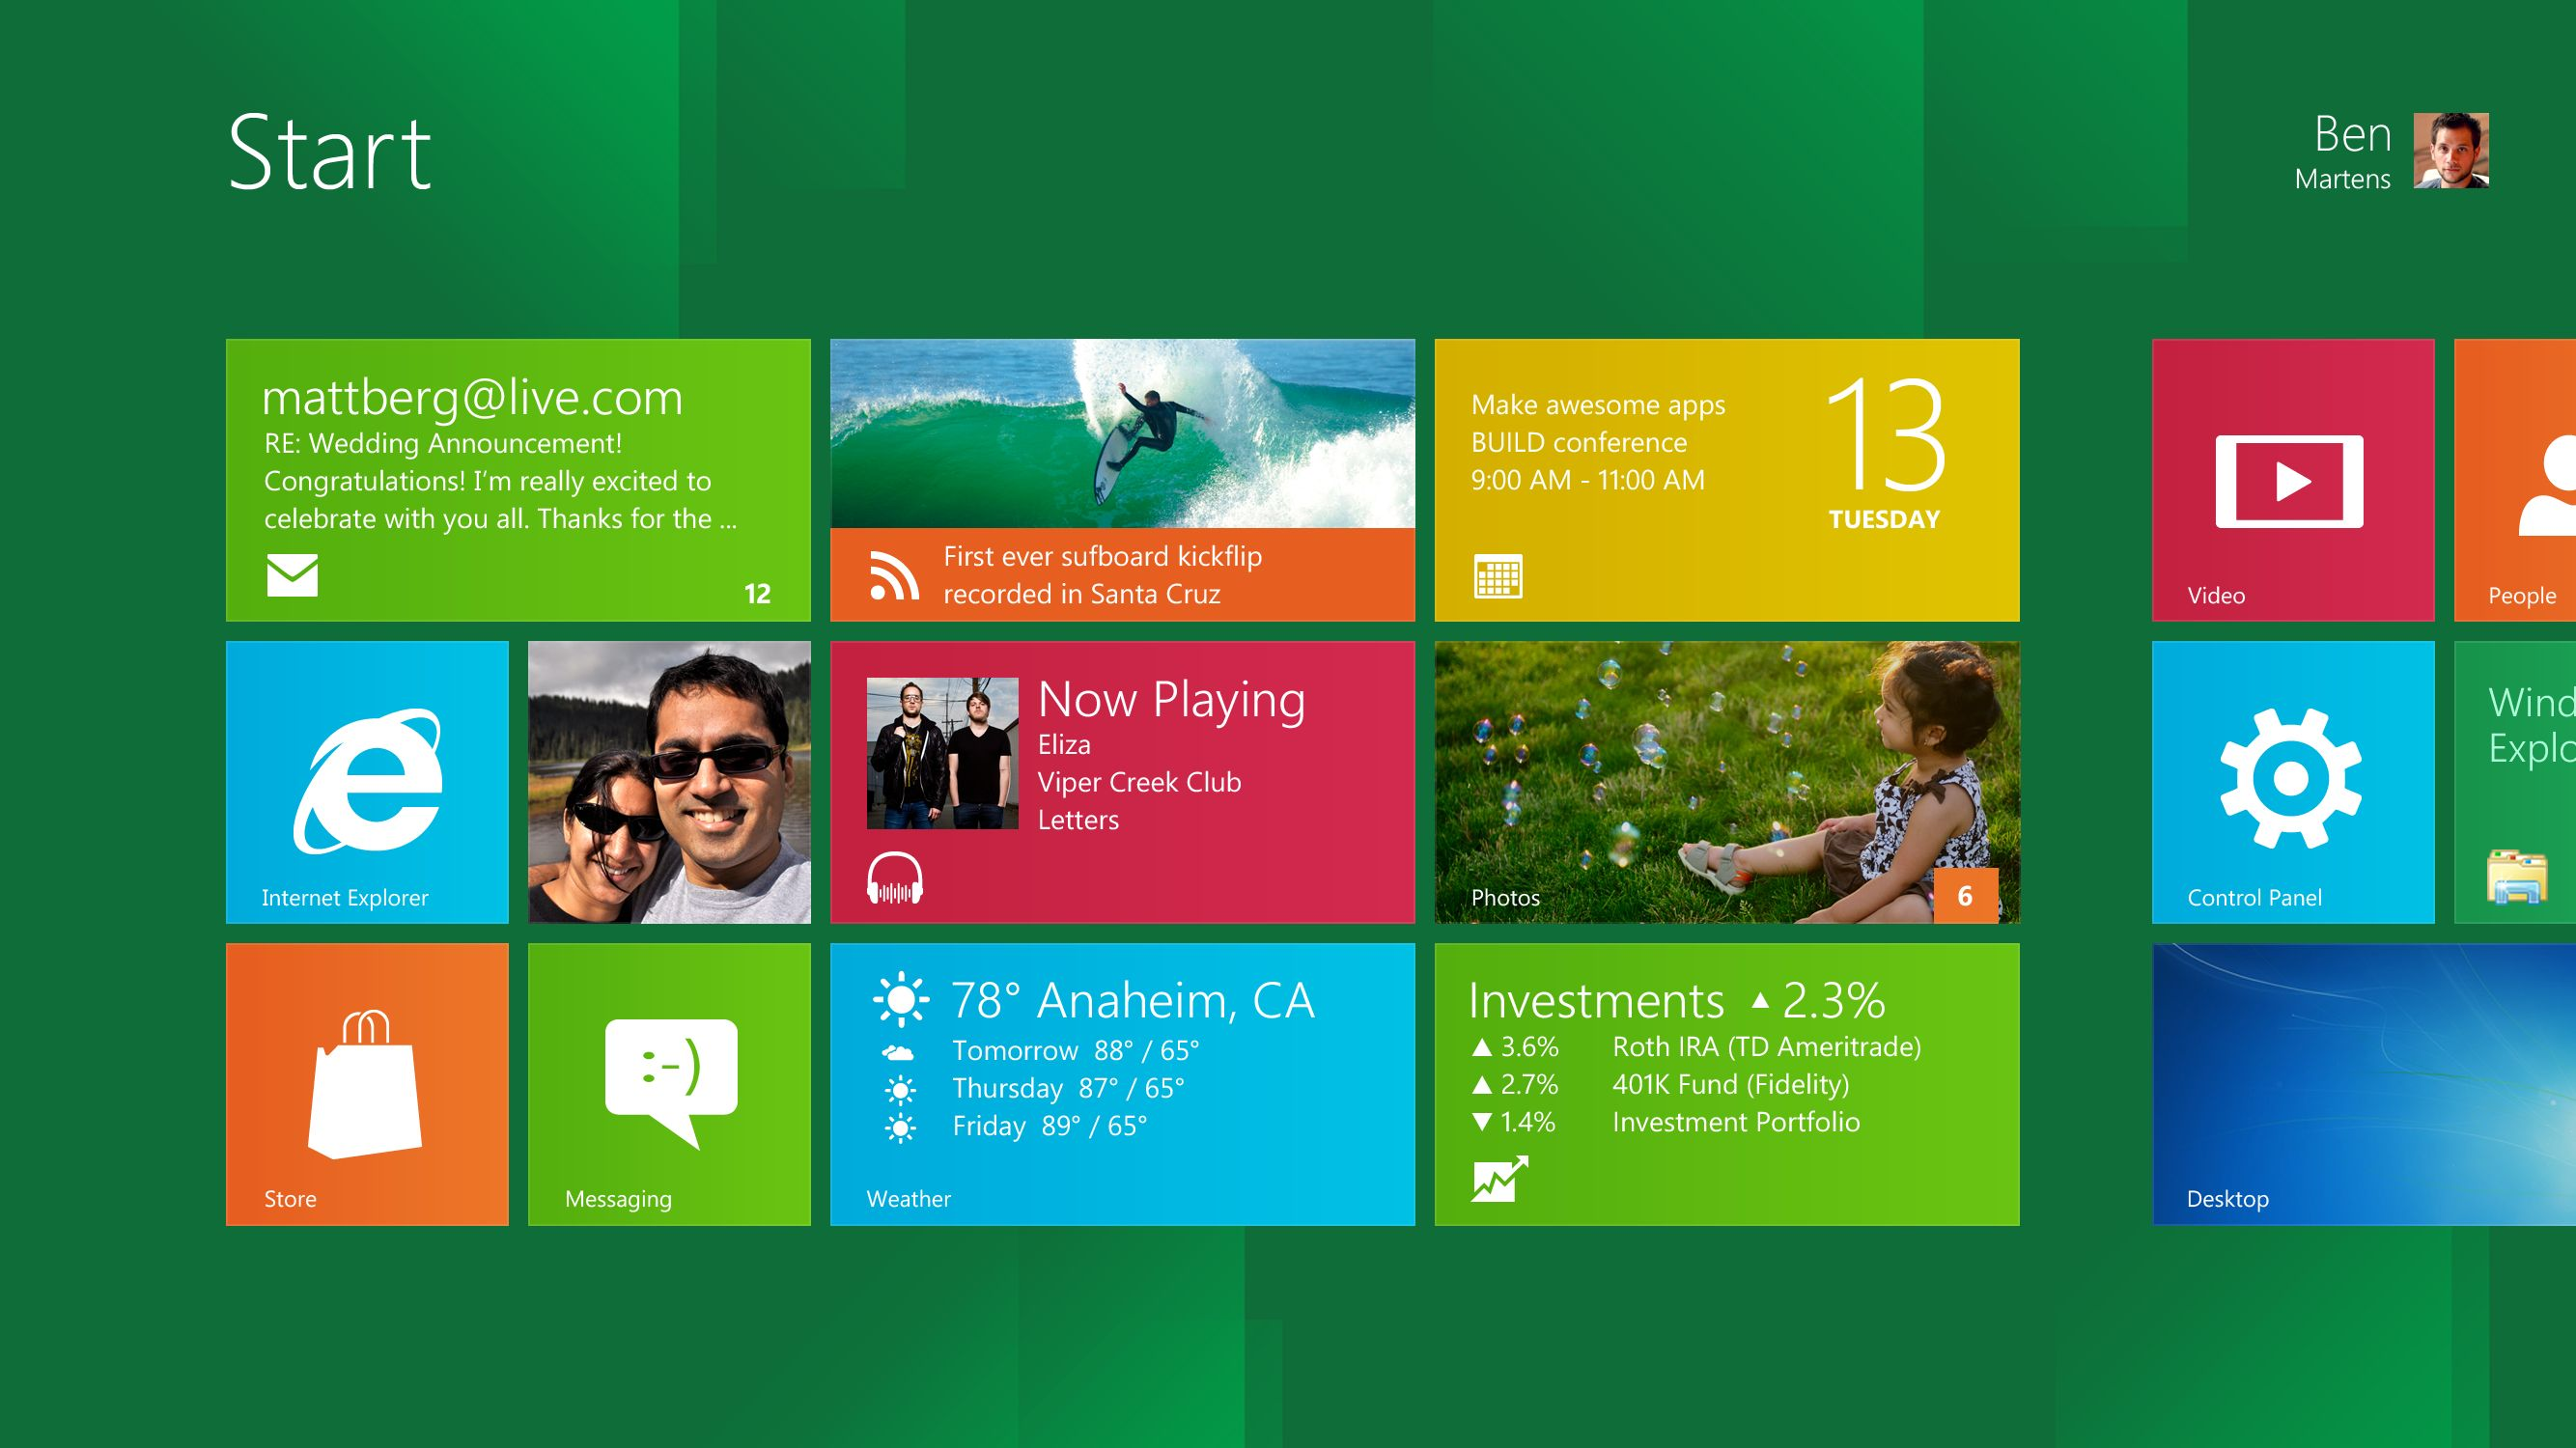 lot more coming to Windows 8 than the Windows Developer Preview 2668x1500